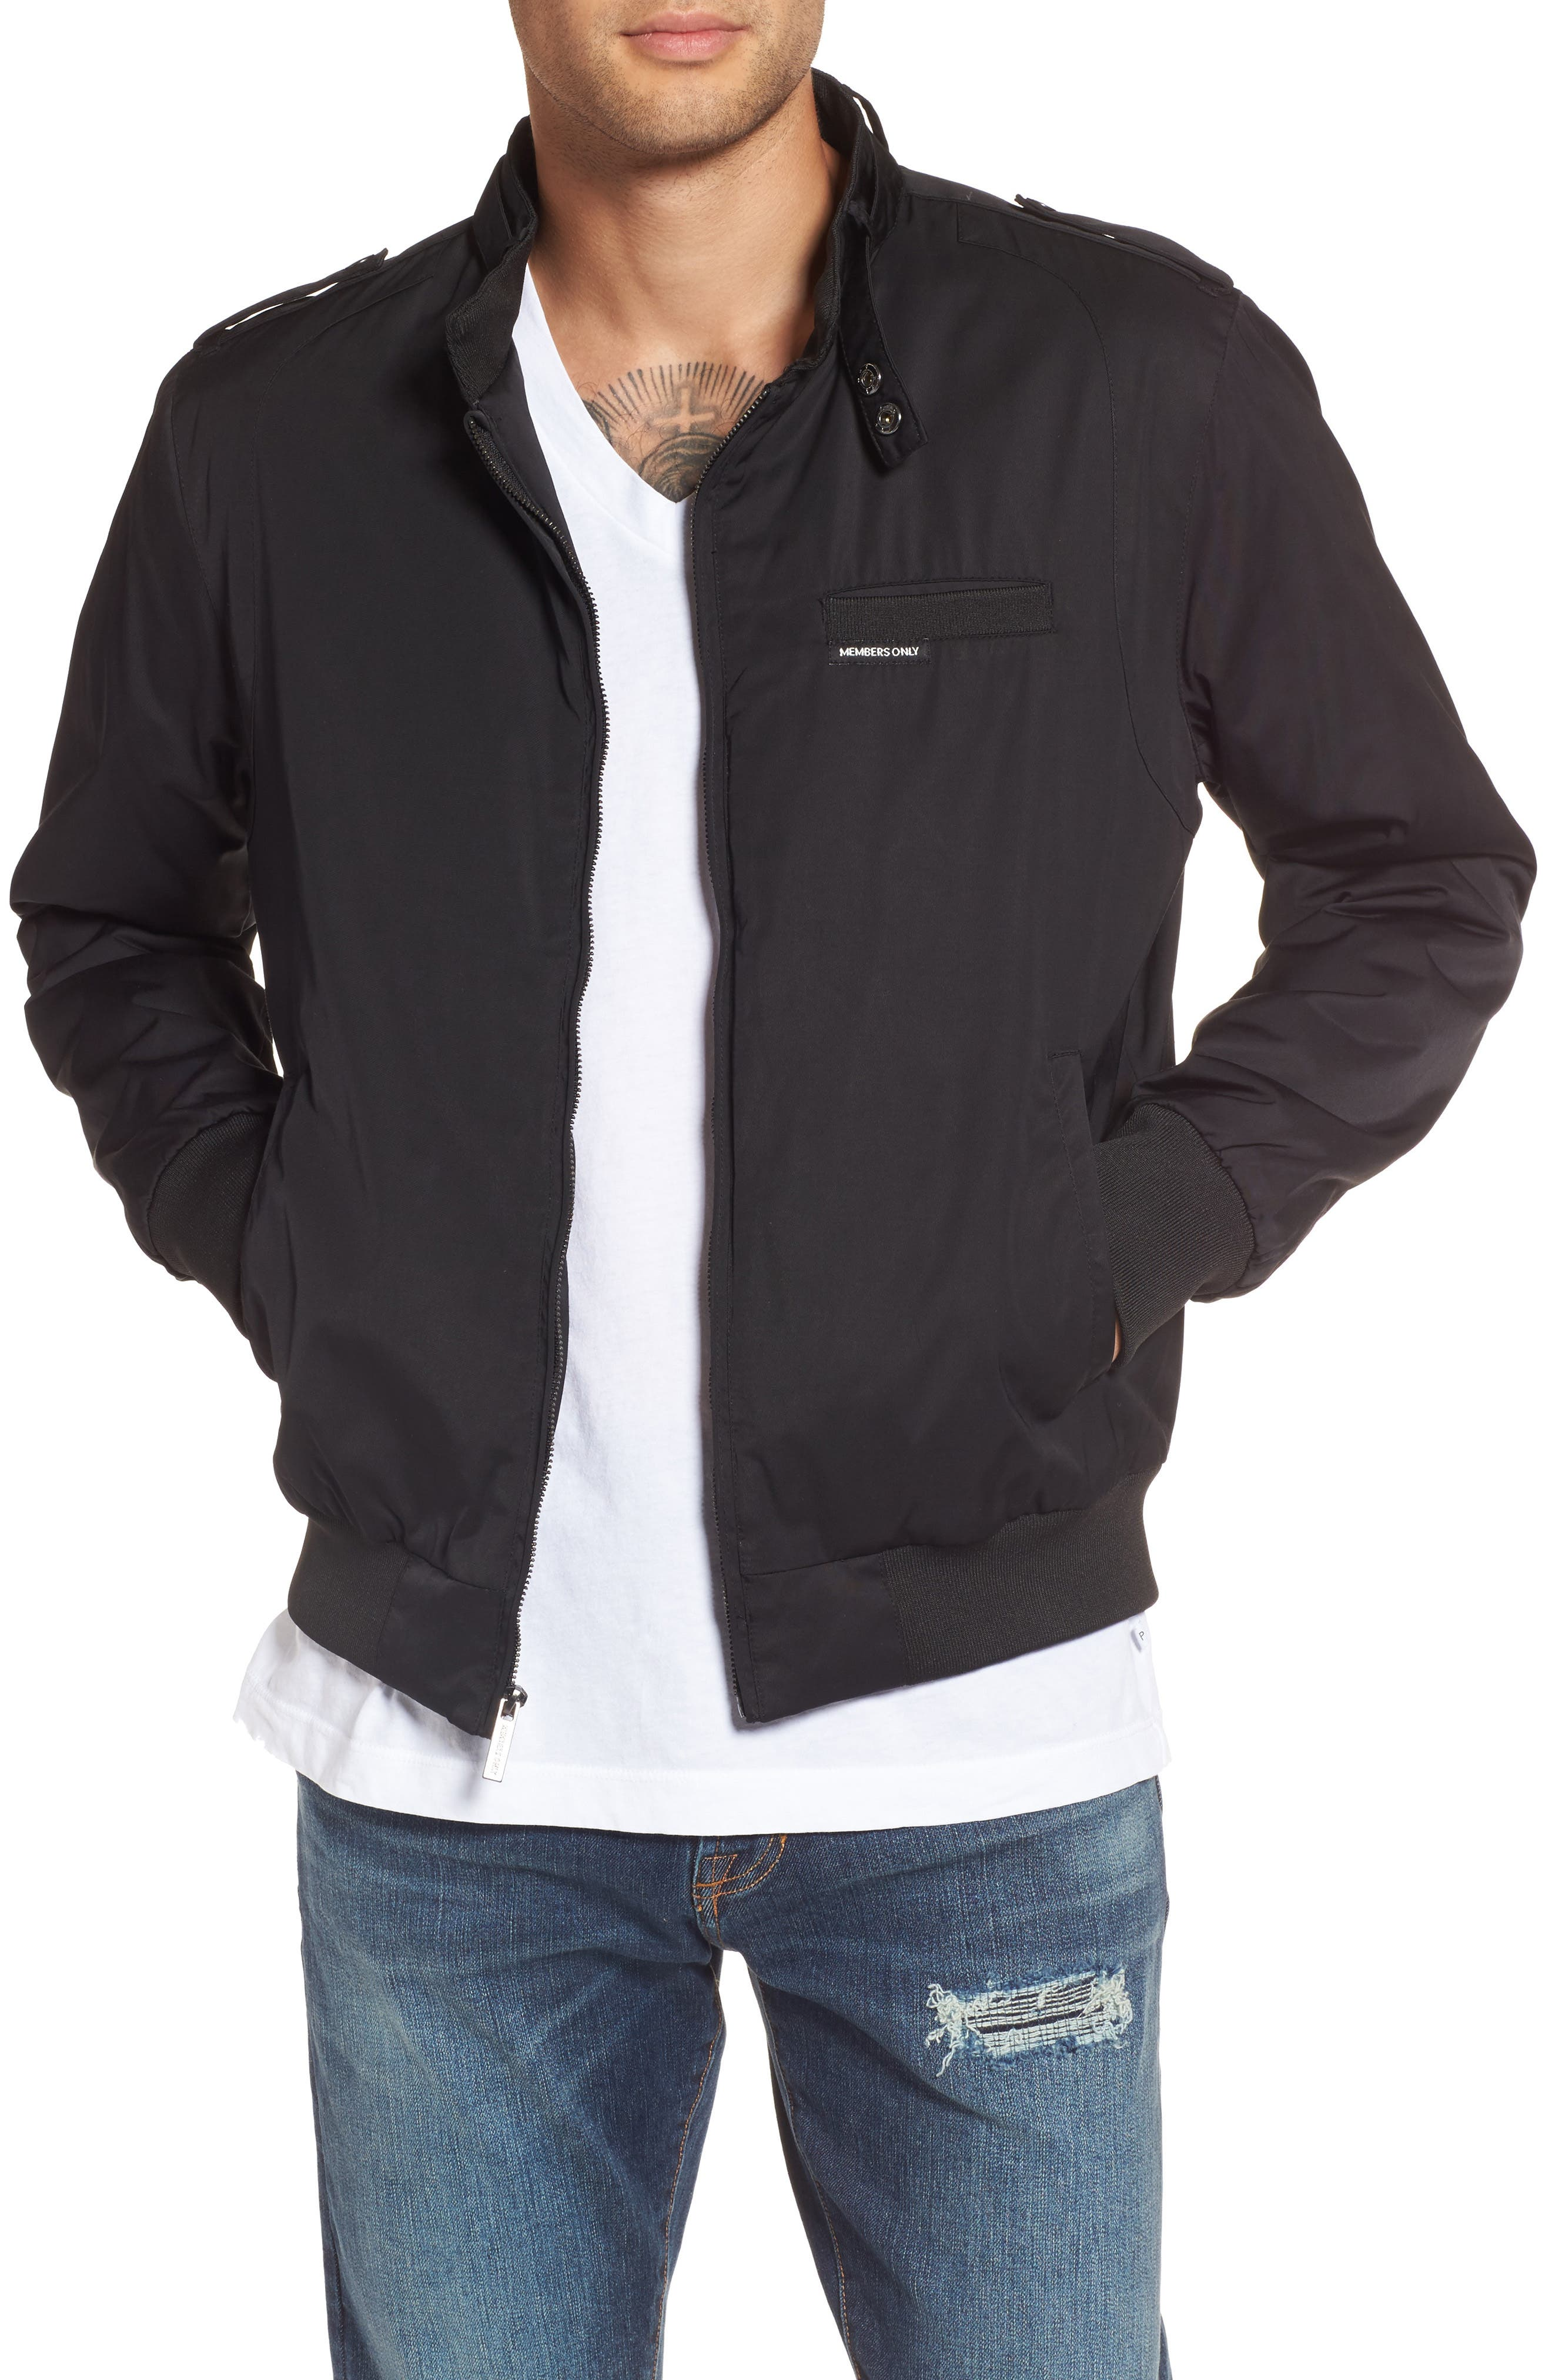 Main Image - Members Only Twill Iconic Jacket